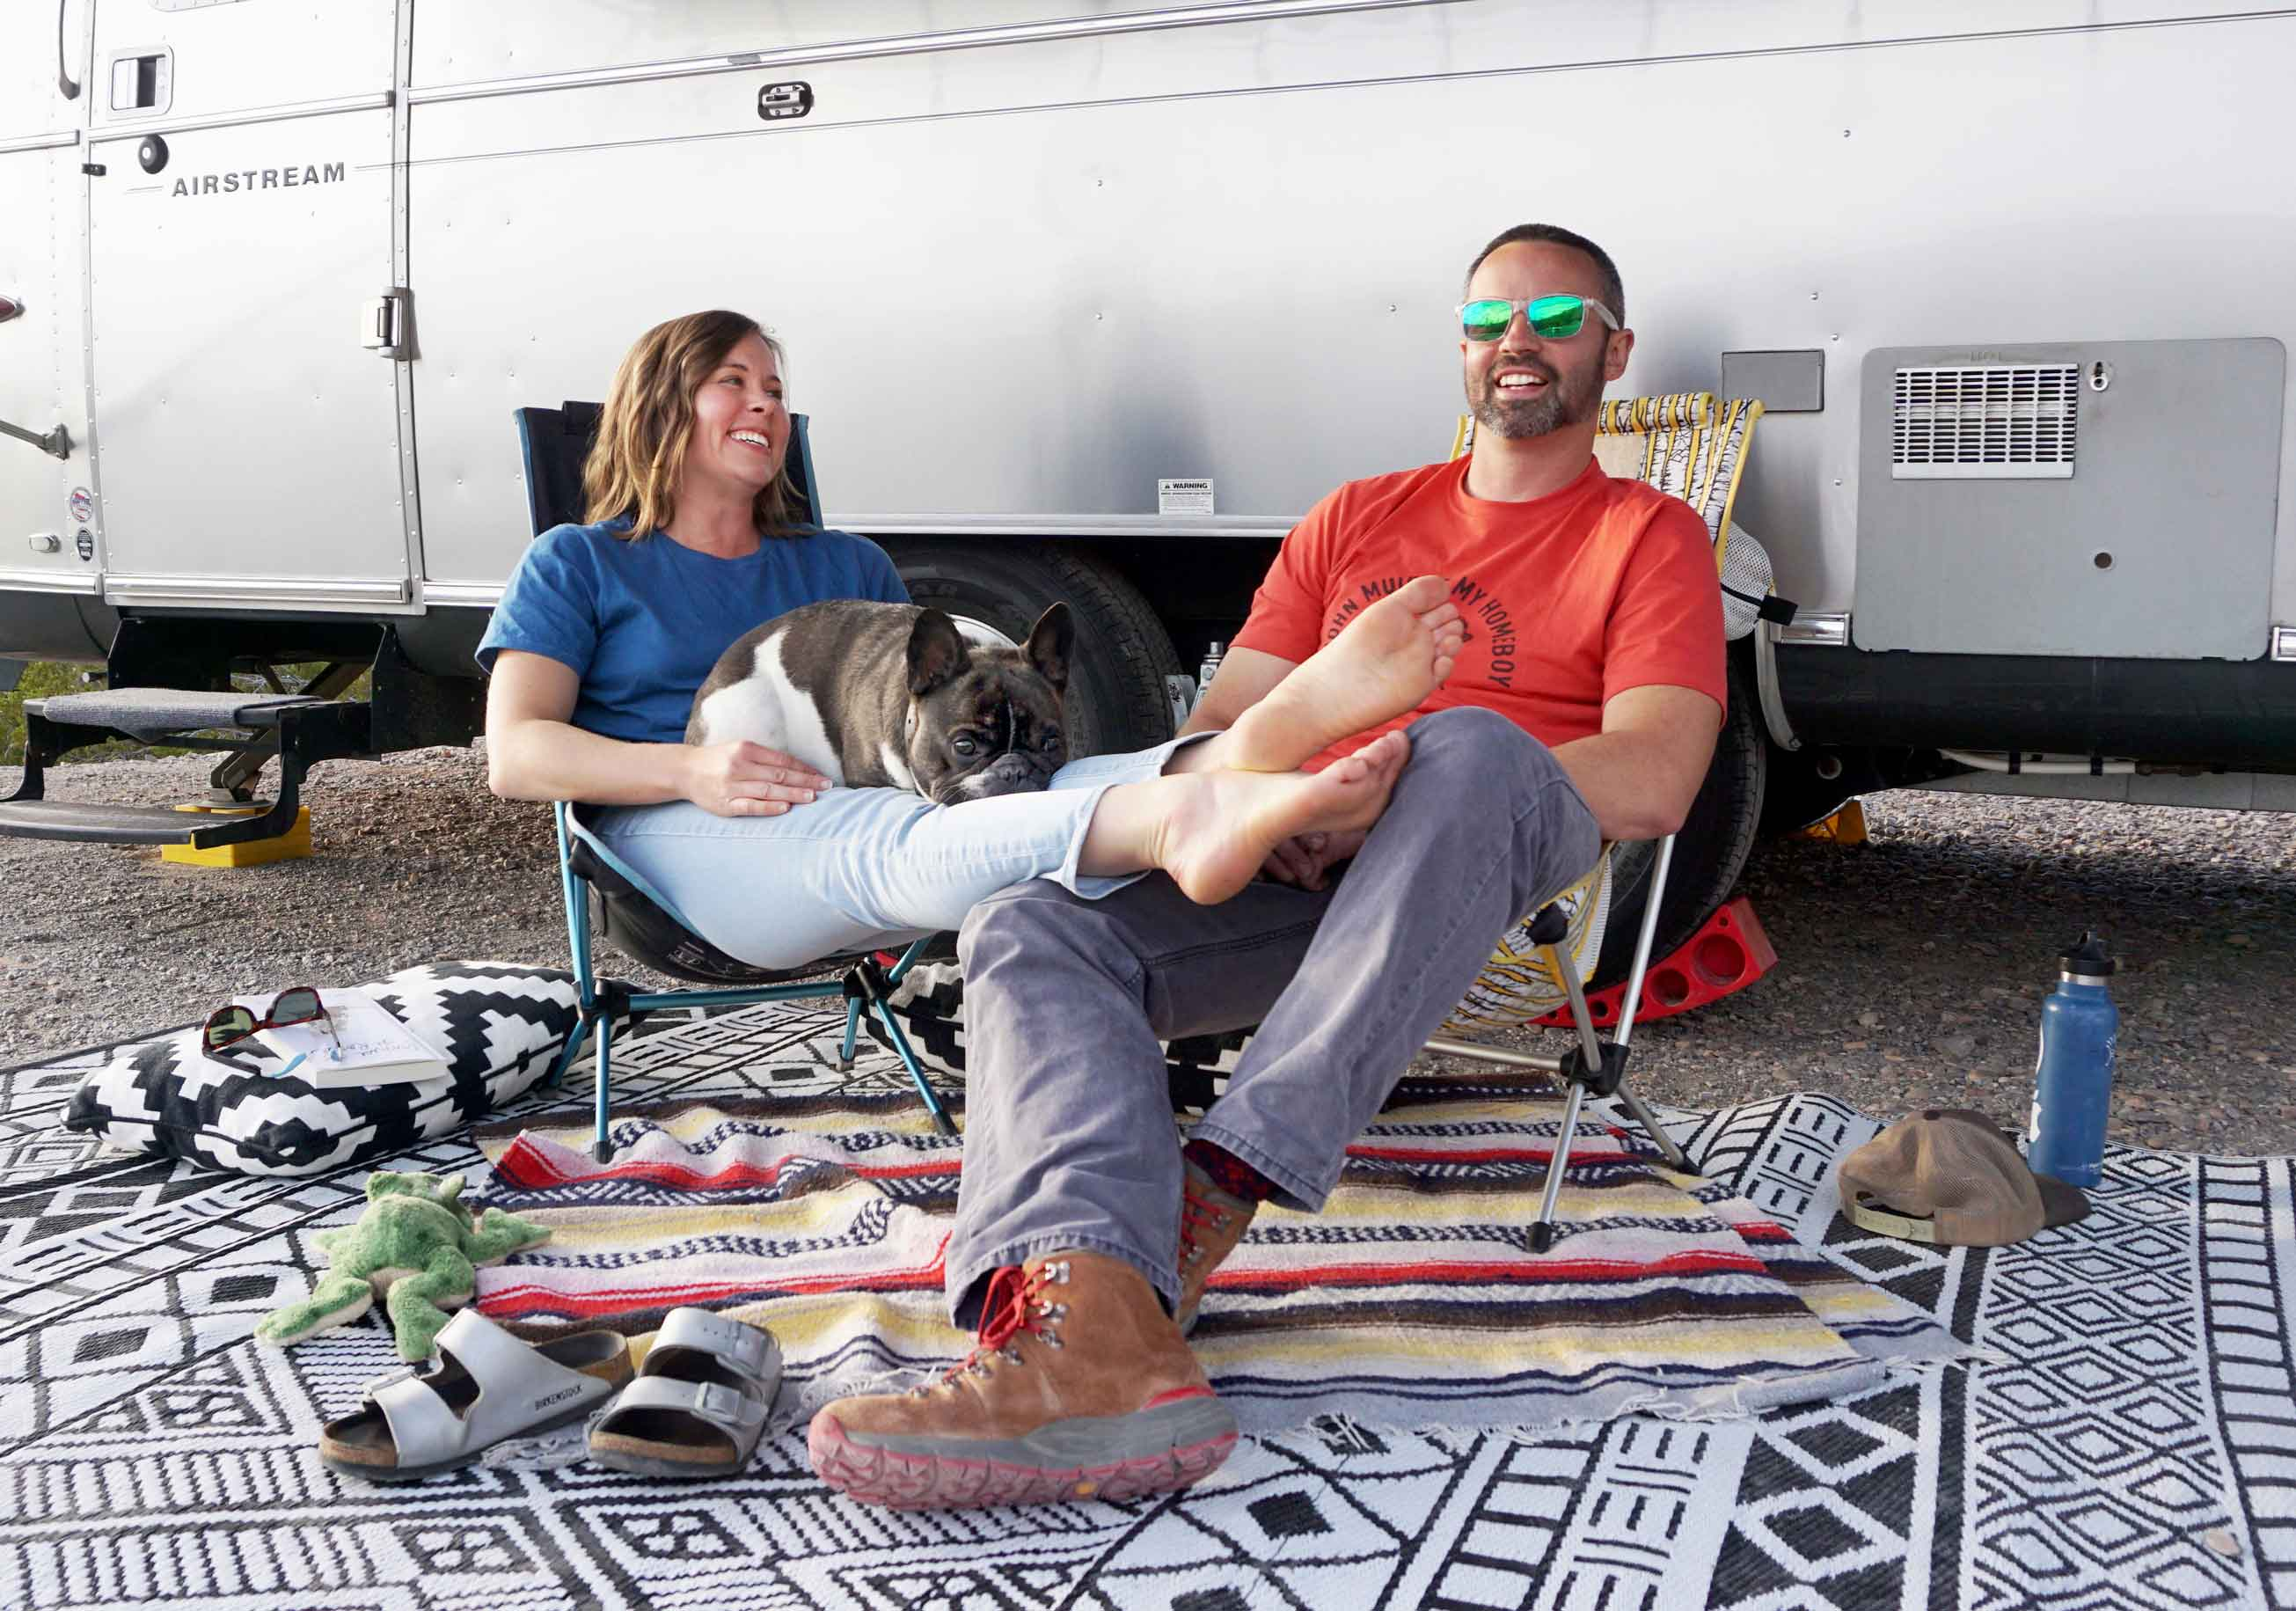 Kate Smith Company owners and their dog Frank in front of their Airstream